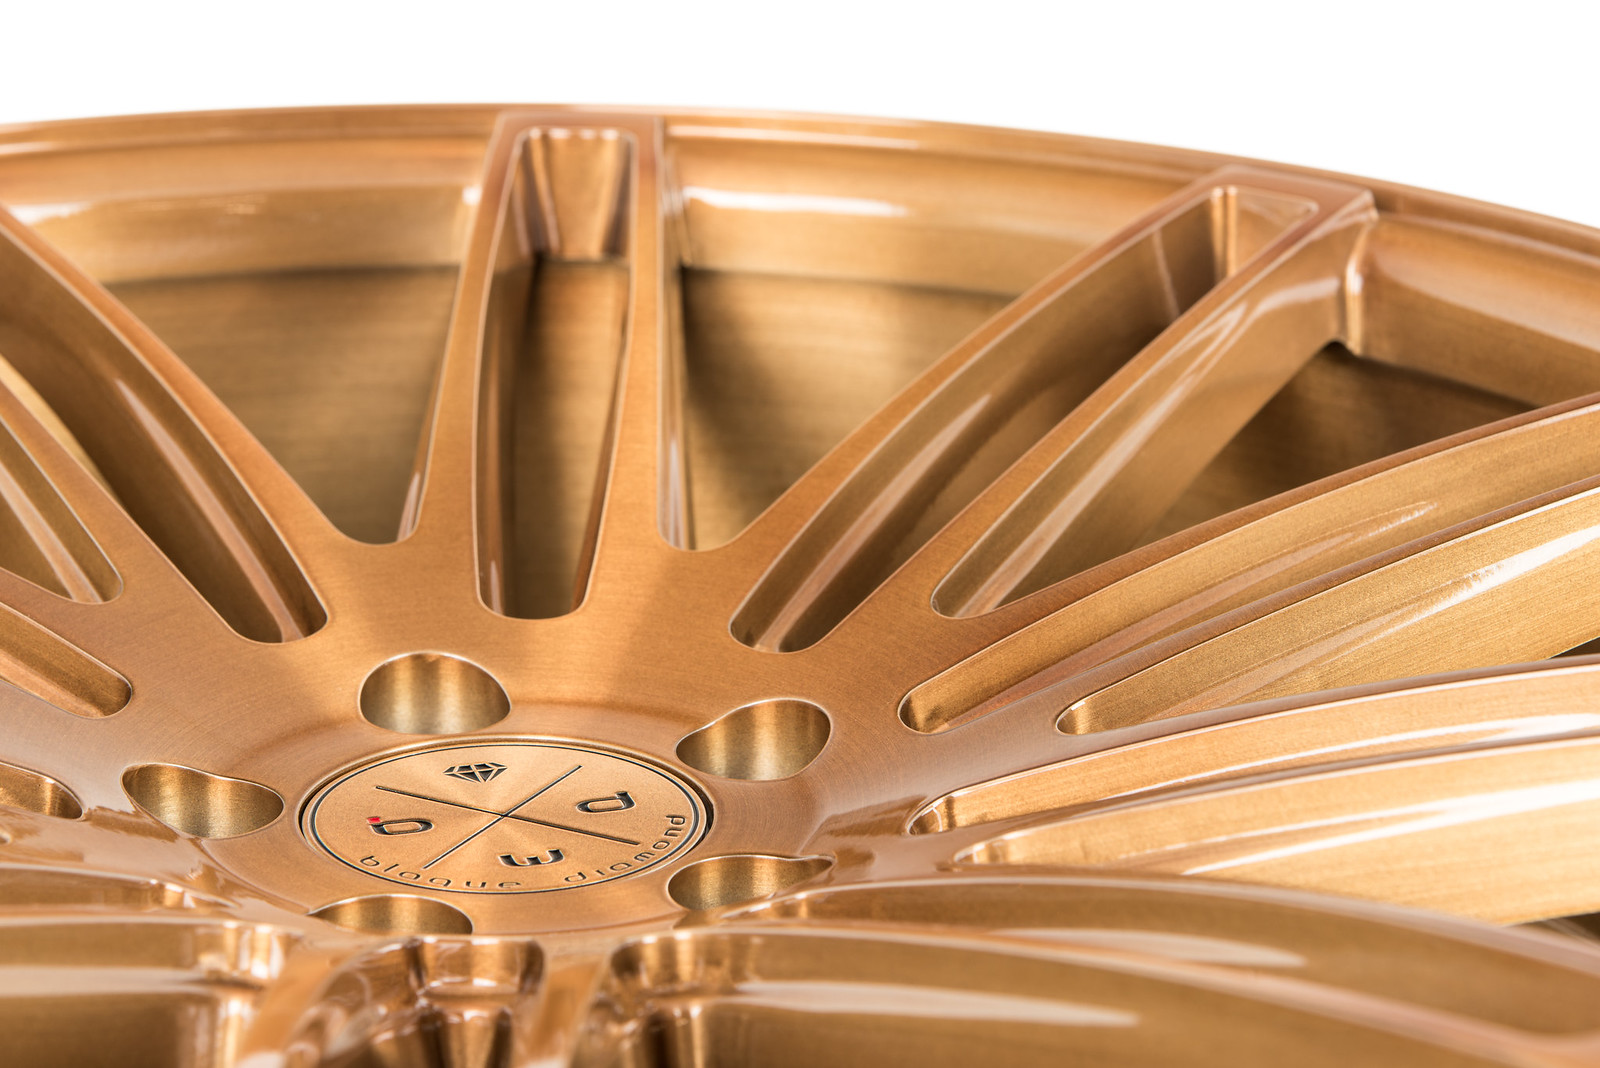 BD2_Brushed_Clear_Monaco_Copper_22_inch-5